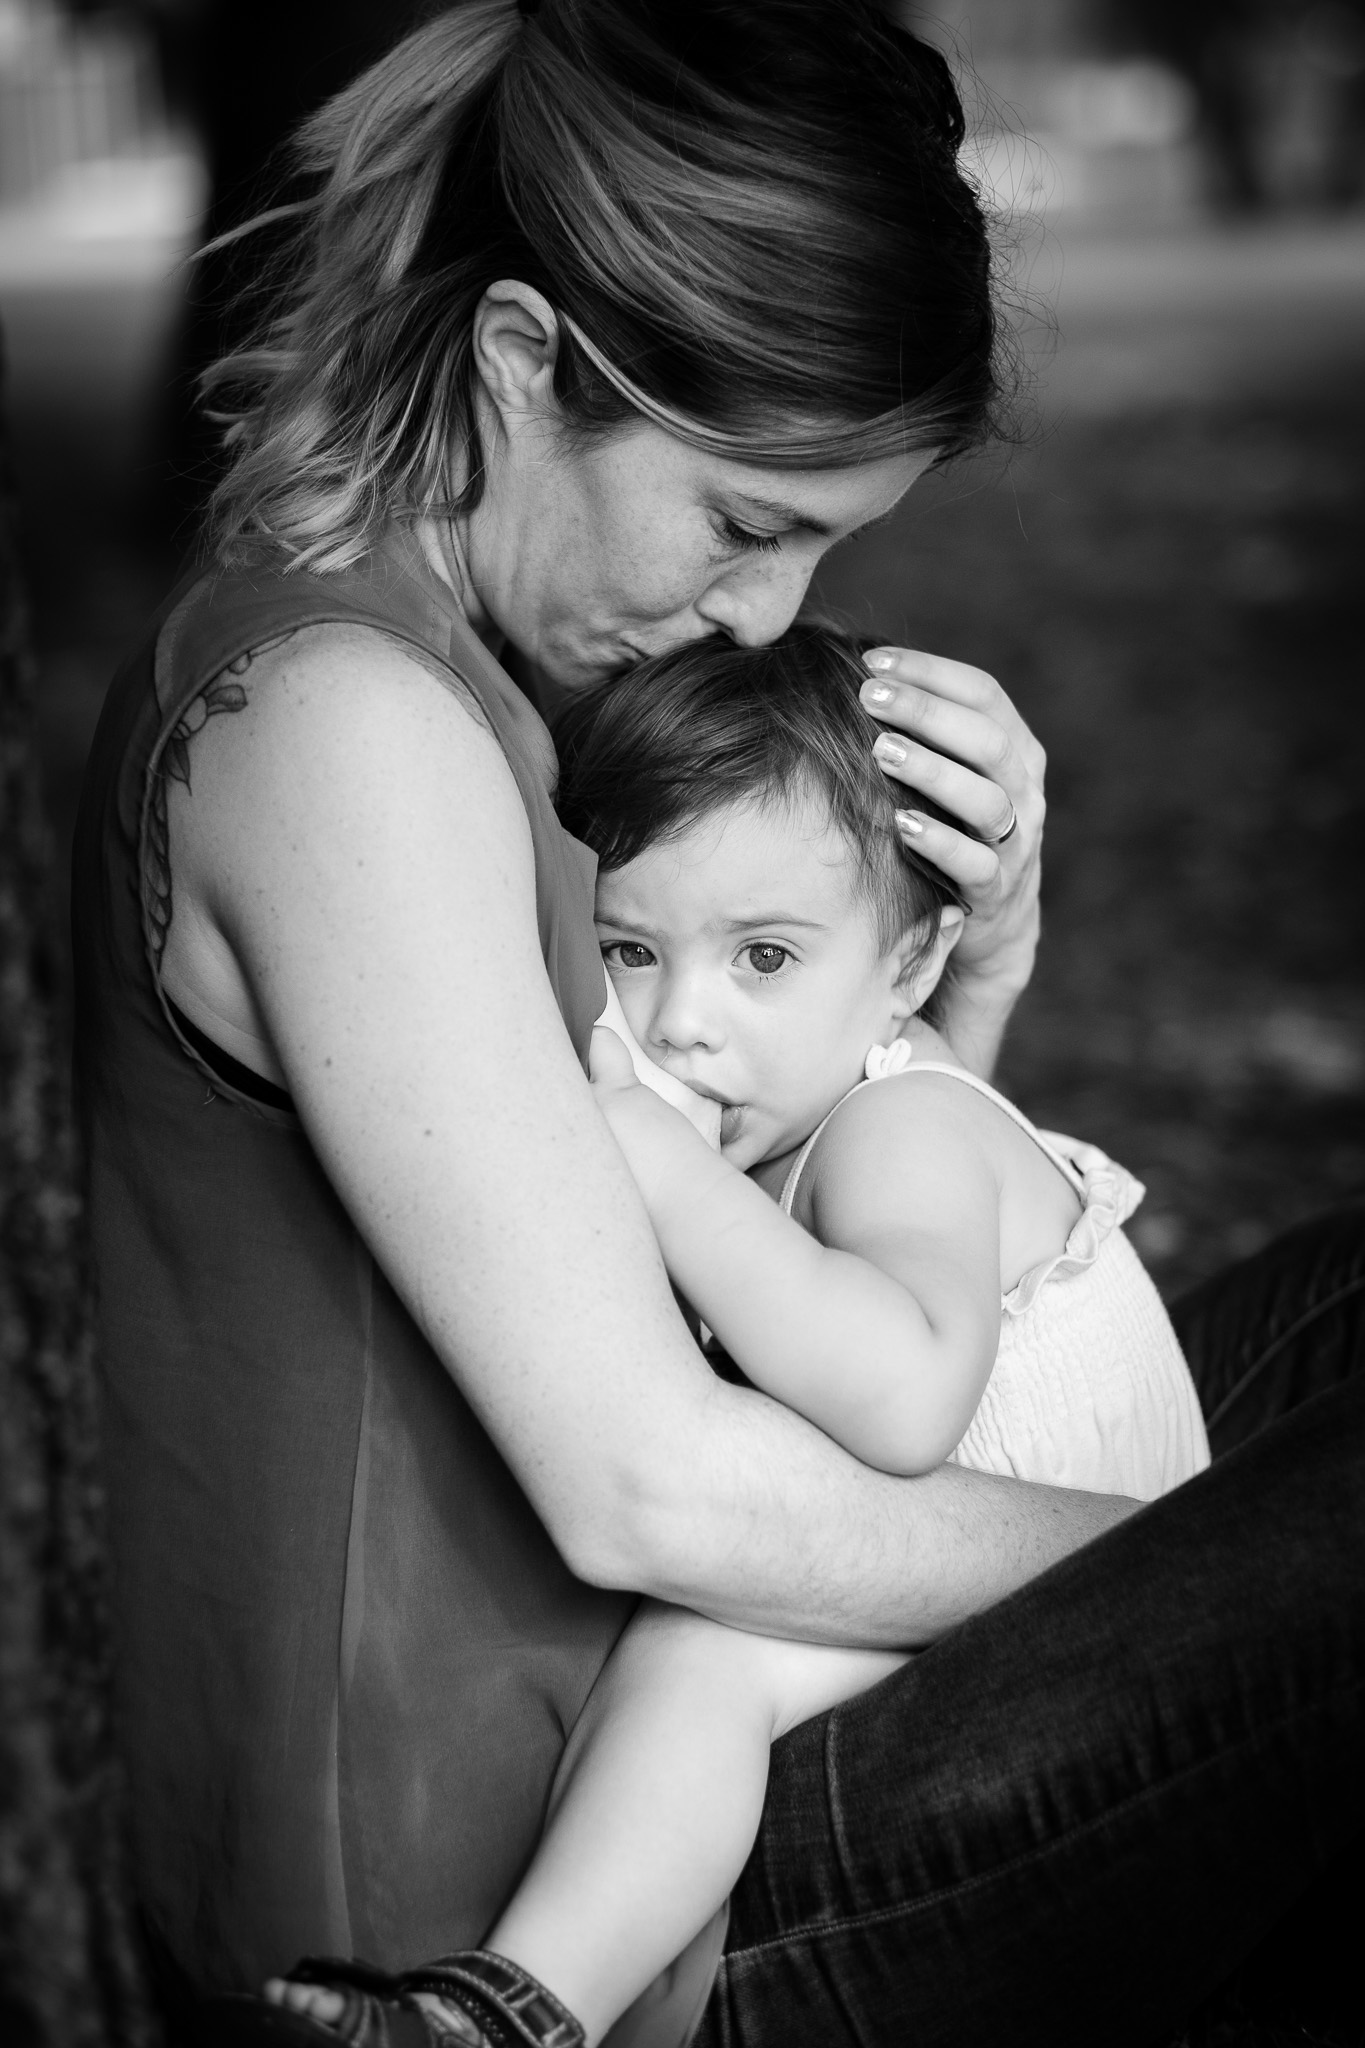 """""""For me breastfeeding is more than just feeding my daughters. it's about nurturing, comforting, being there for them when they need me the most. I'll always look back on these days with such a accomplished feeling."""" ~ Claudia and her daughter Billie"""